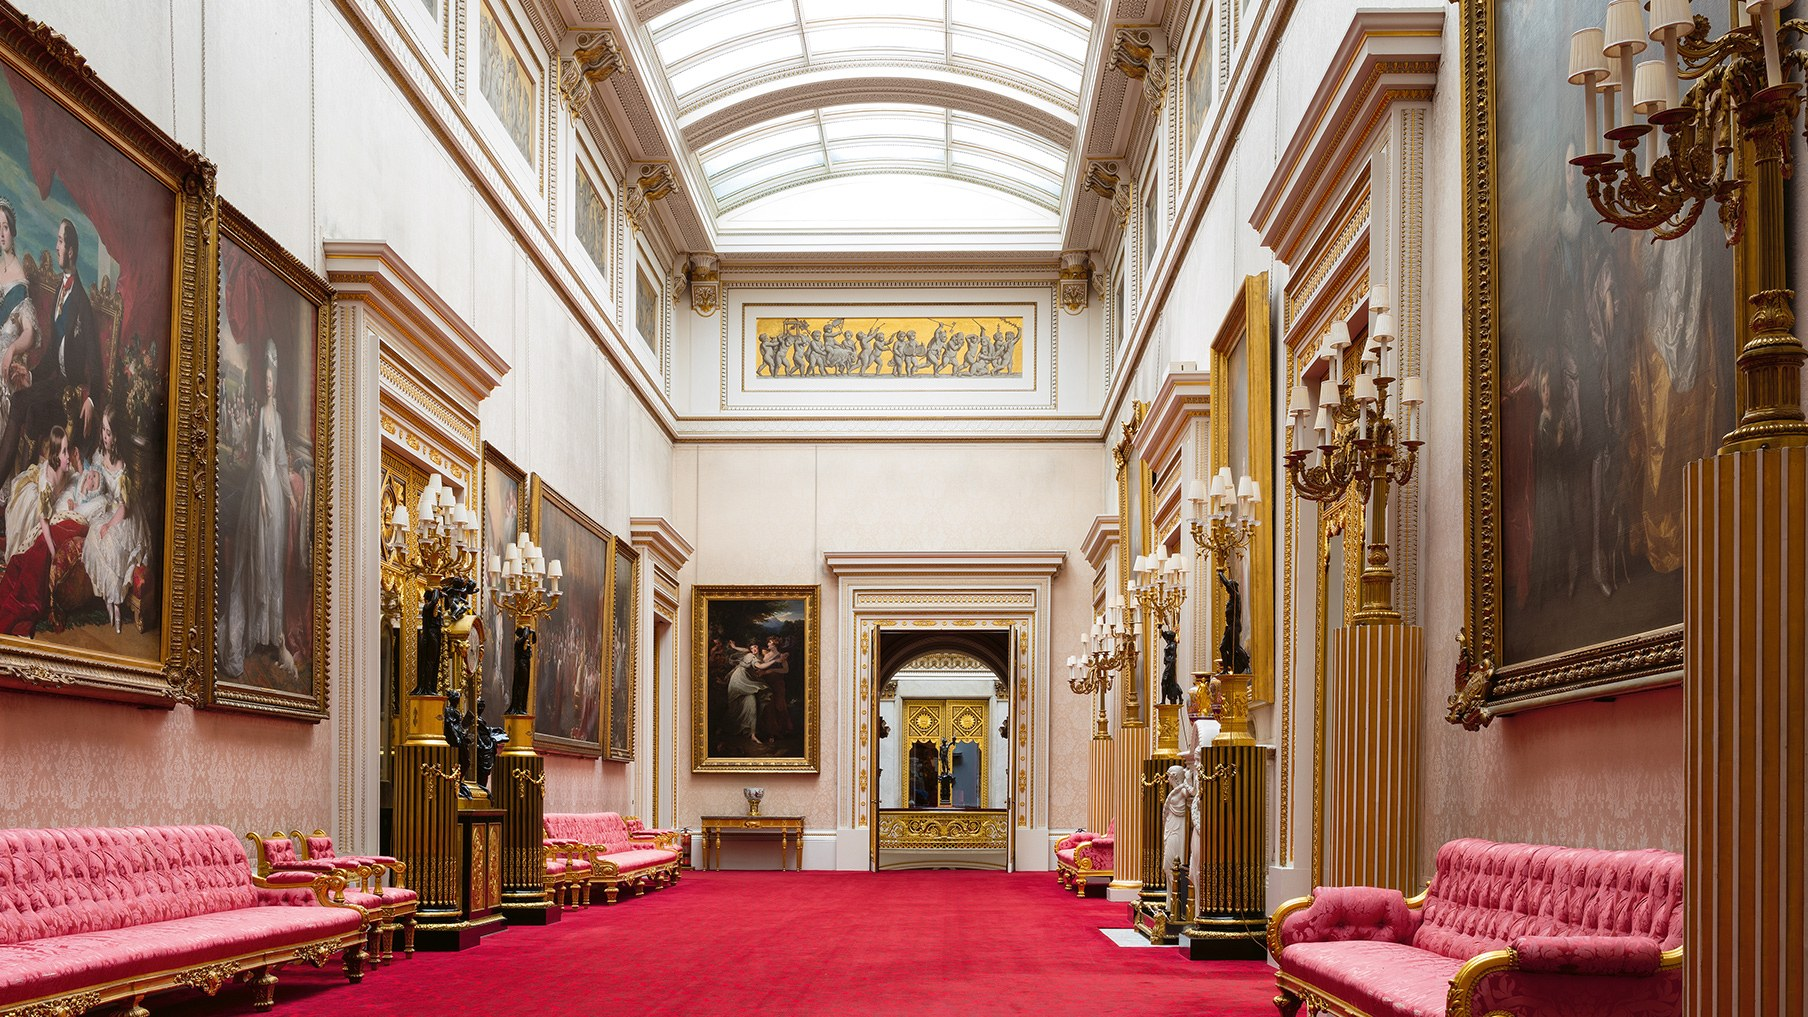 Buckingham palace rooms pictures